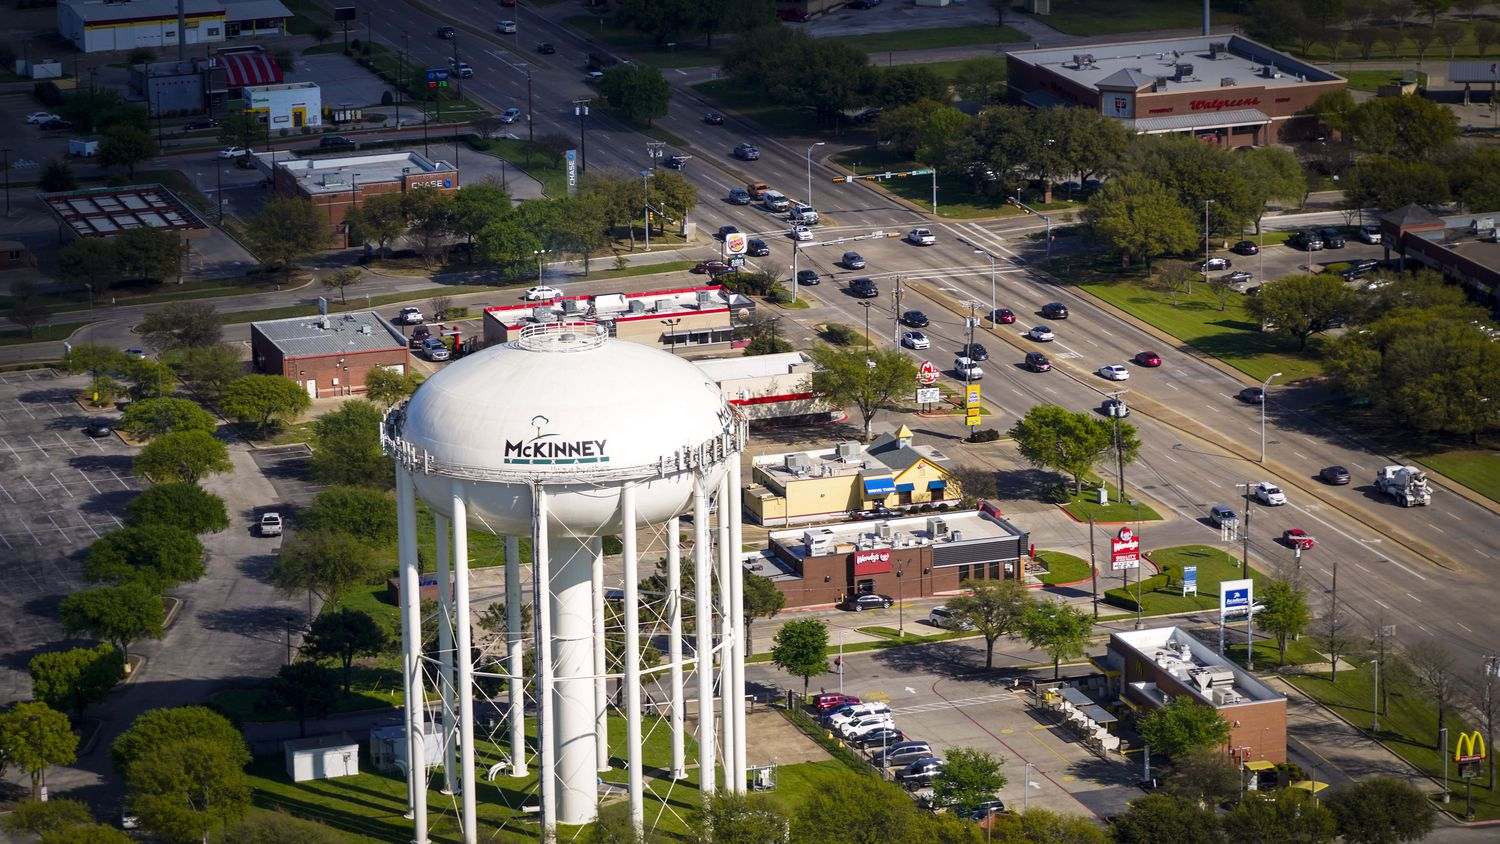 McKinney is one of the fastest-growing cities in the United States over the last decade, according to information released by the U.S. Census Bureau.